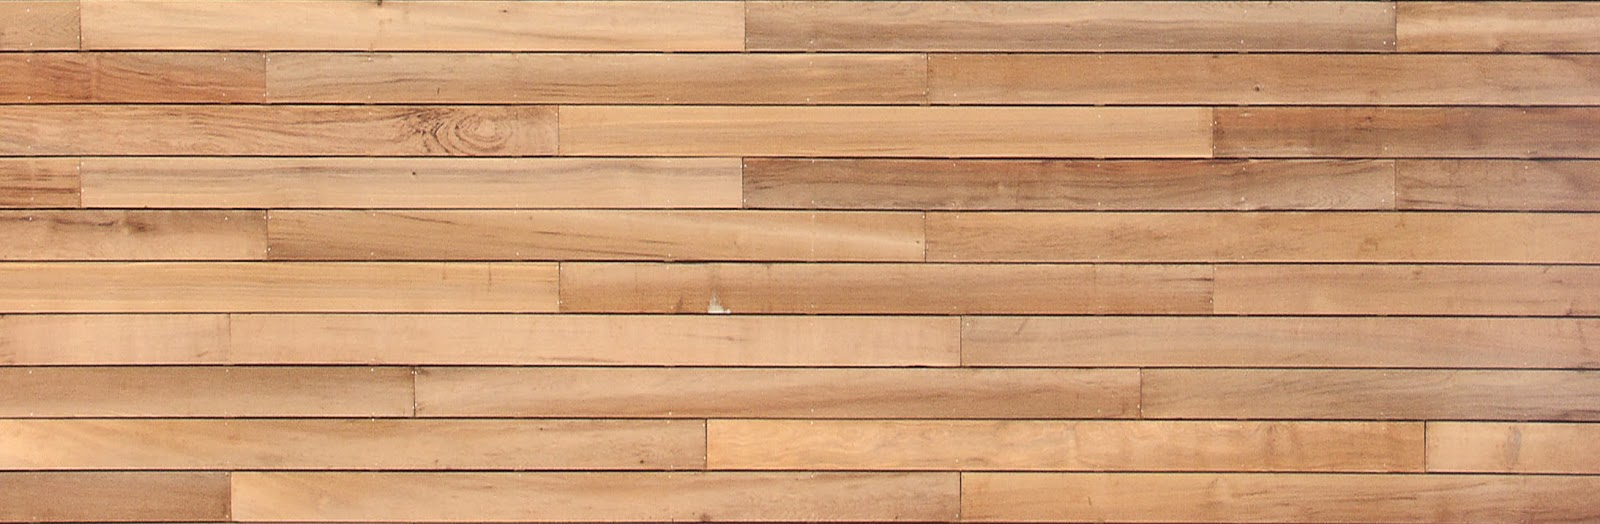 Wood Plank Texture Seamless ~ Tileable wood planks clean maps texturise free